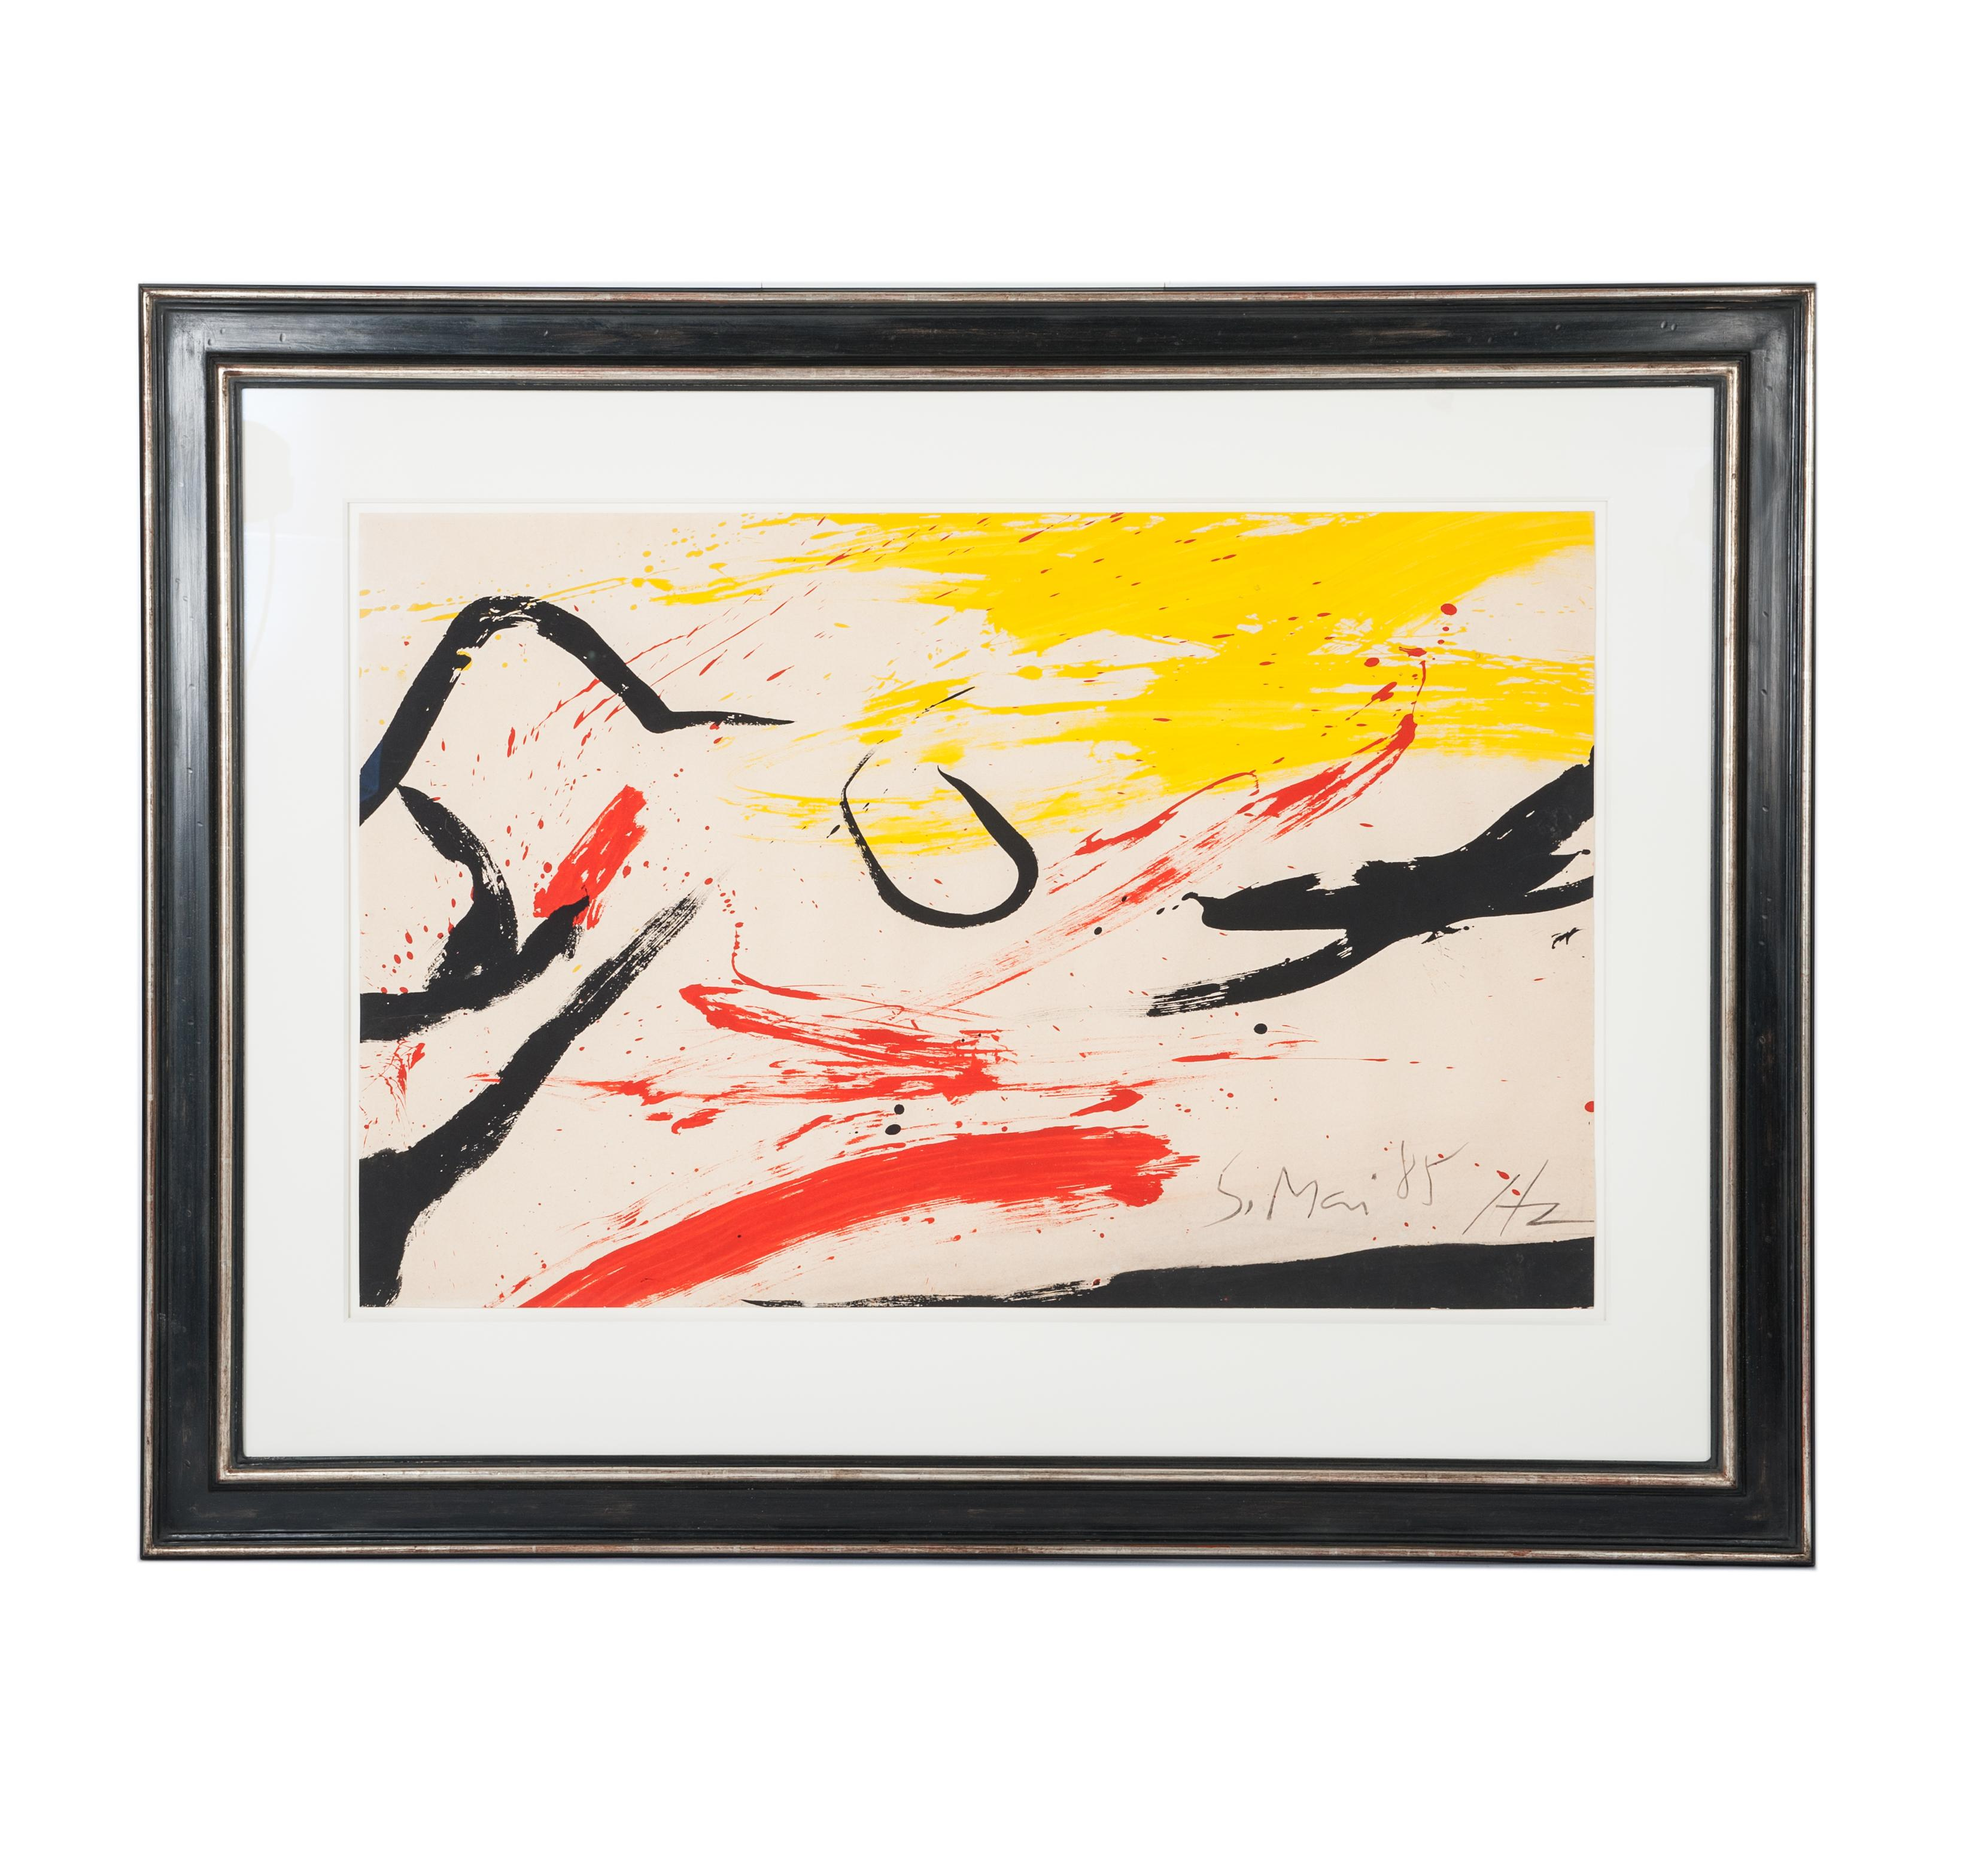 Informal Painting 'Gouache' Color Black, Yellow, Red by Helmut Zimmermann, 1985